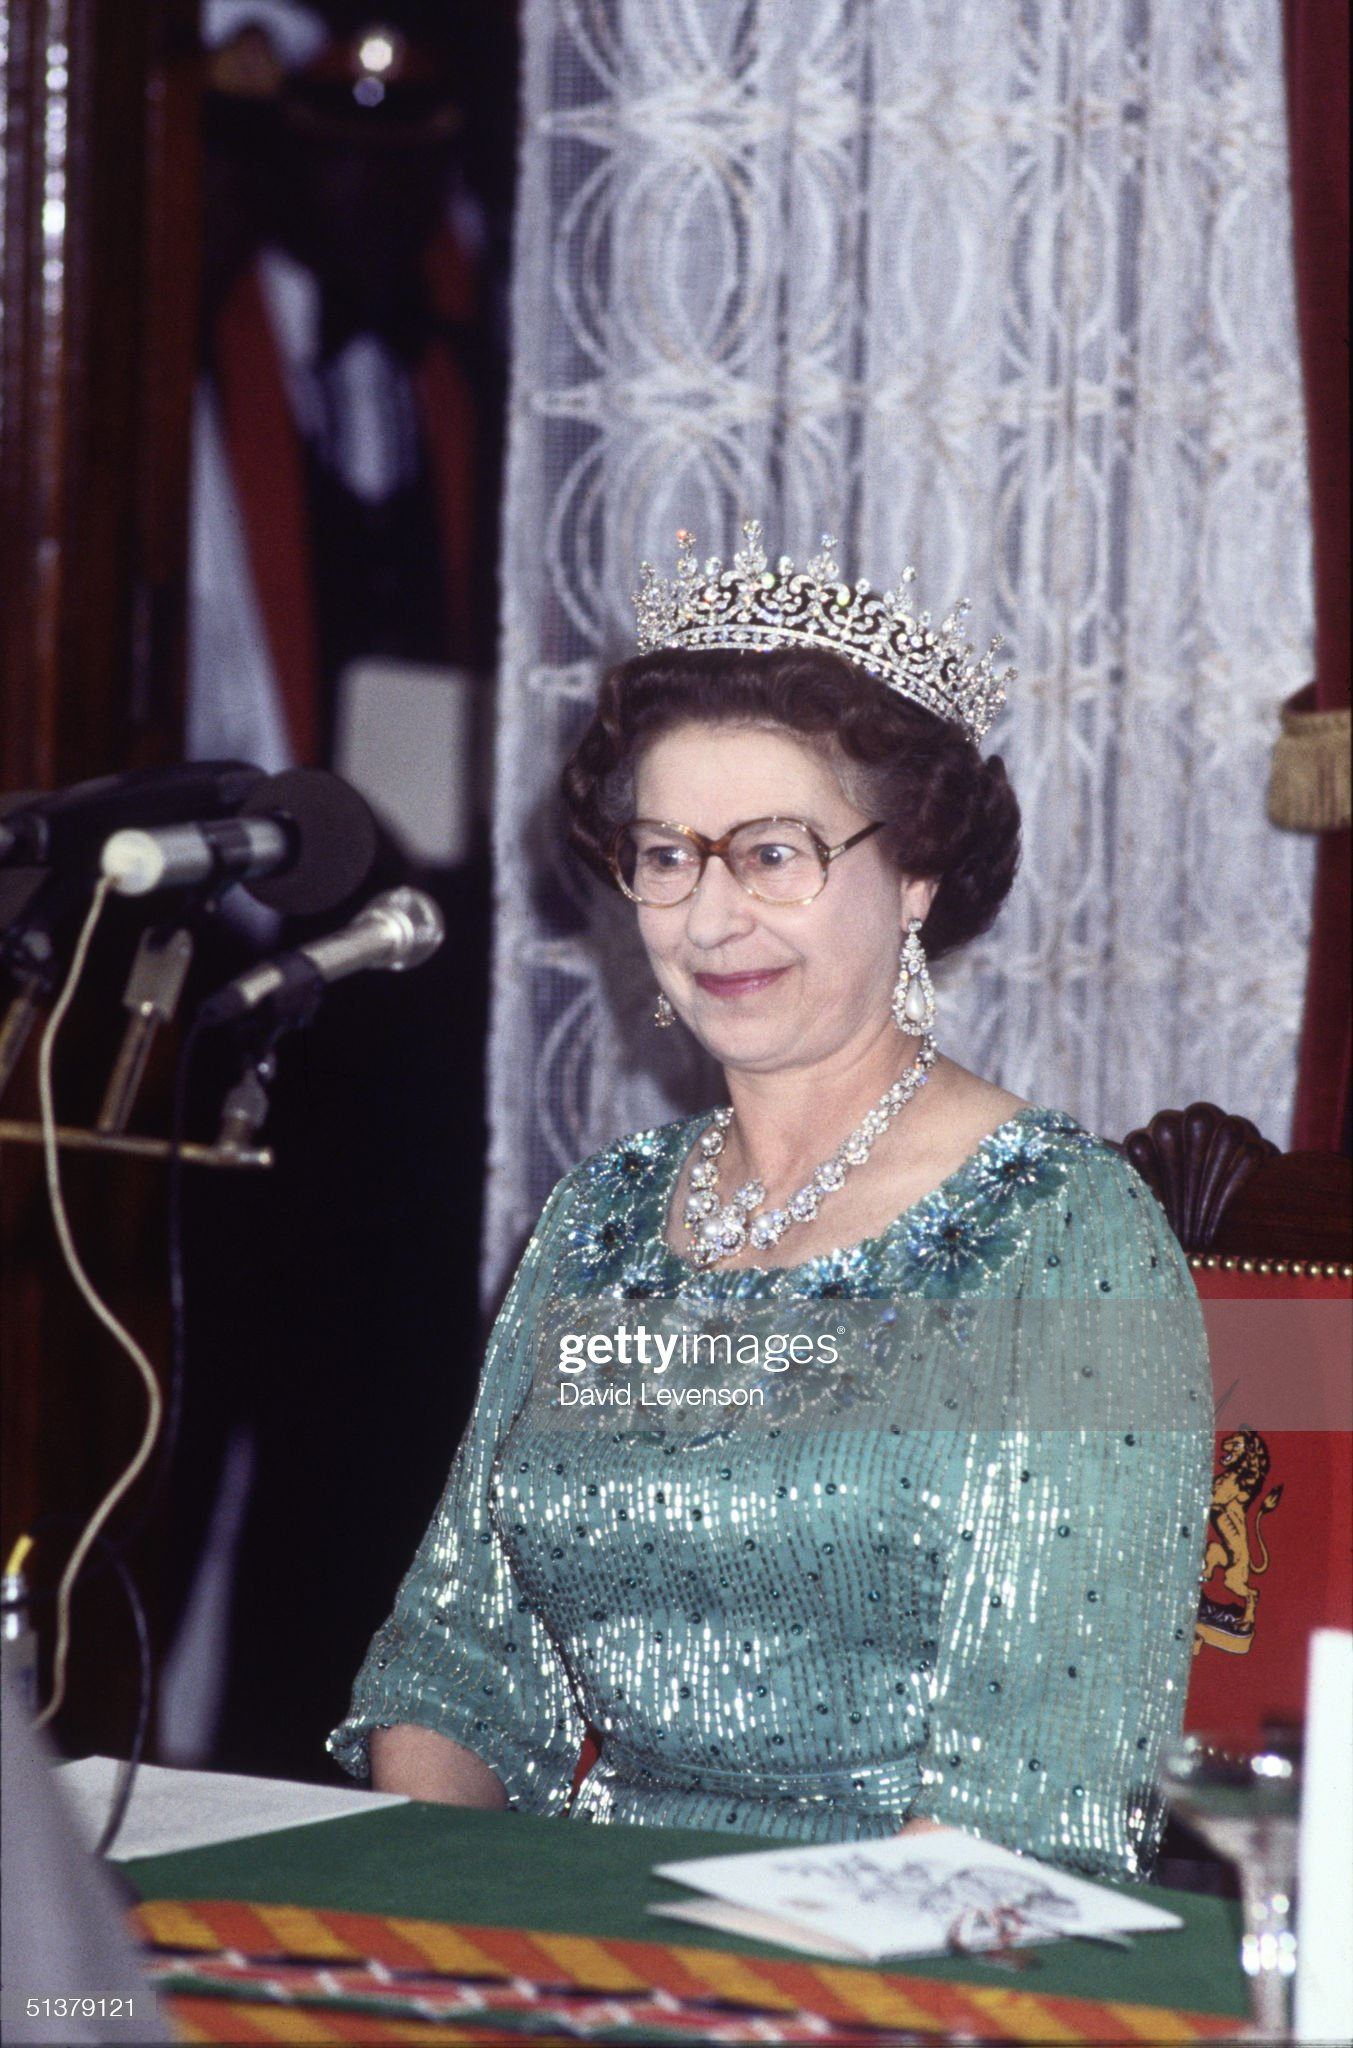 Queen Elizabeth II prepares to make a speech : News Photo